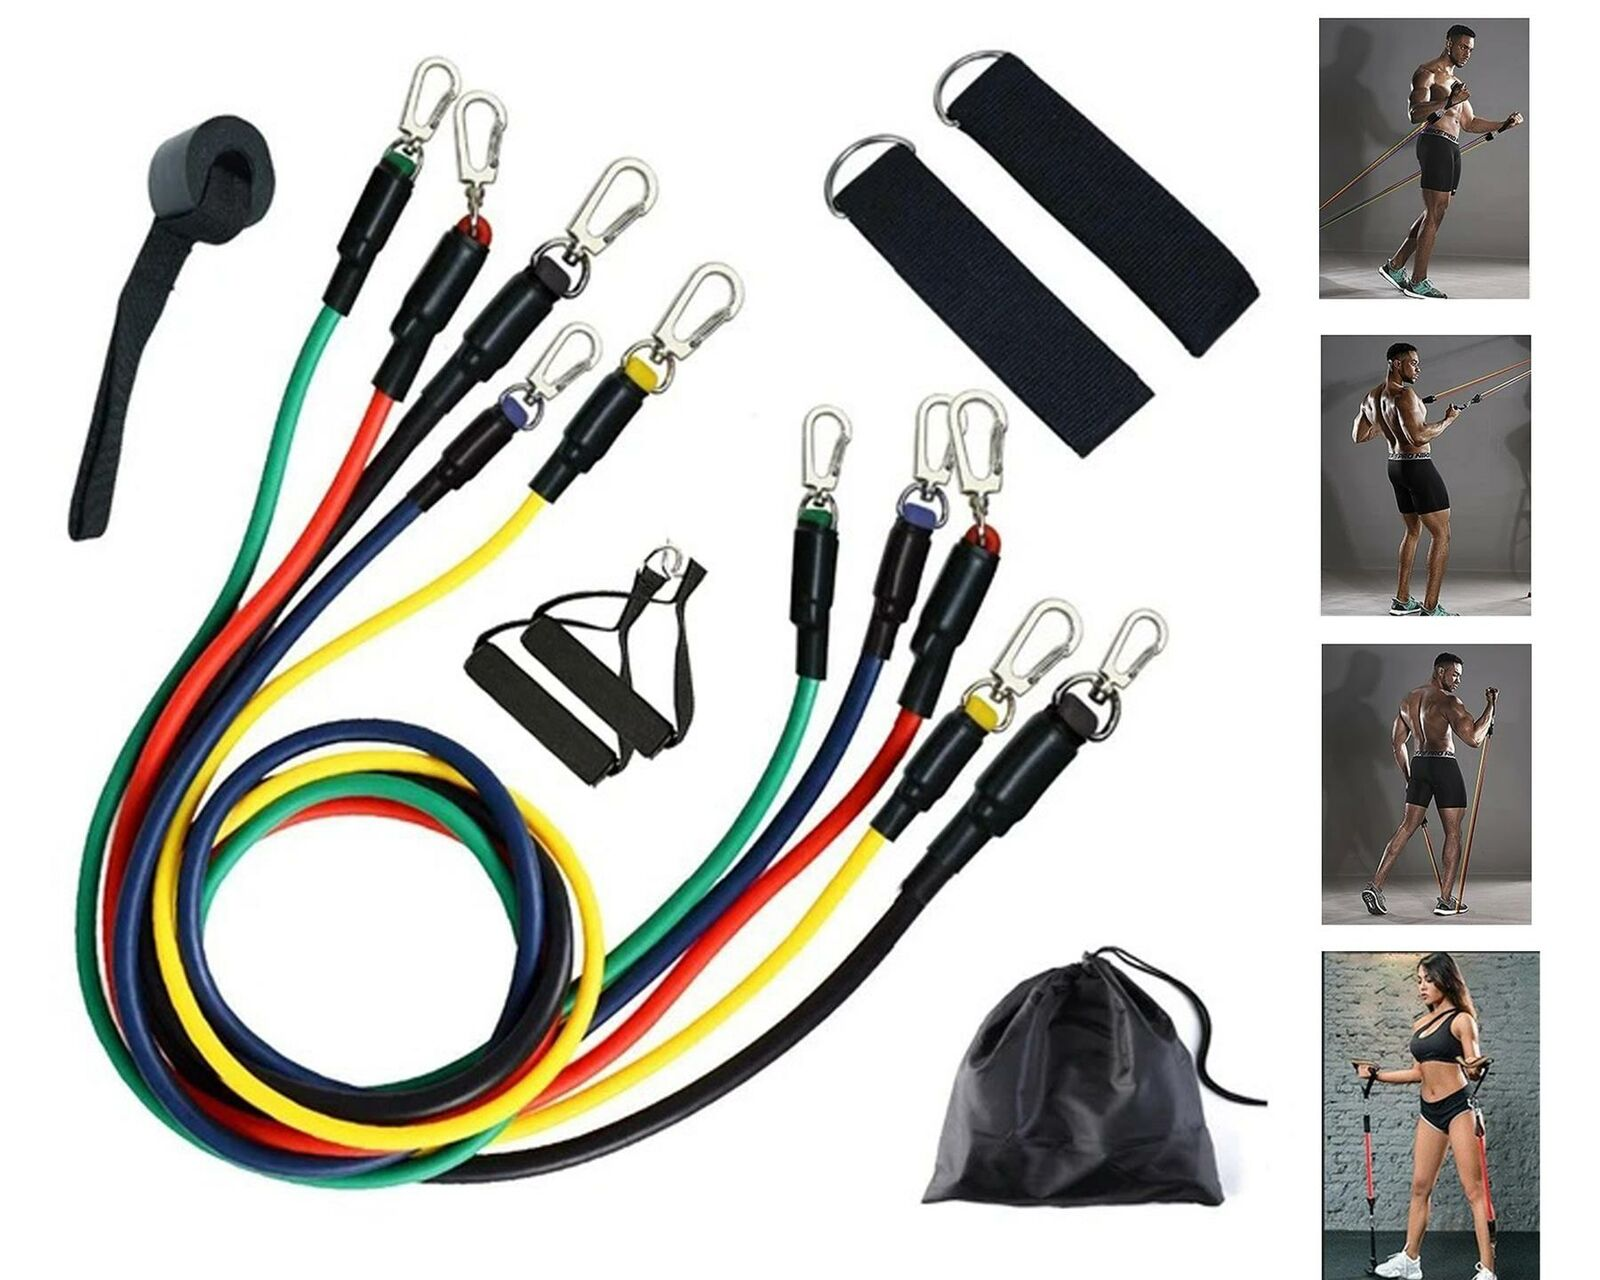 11Pcs Resistance Exercise Bands Set Workout Yoga Fitness Crossfit Training Home